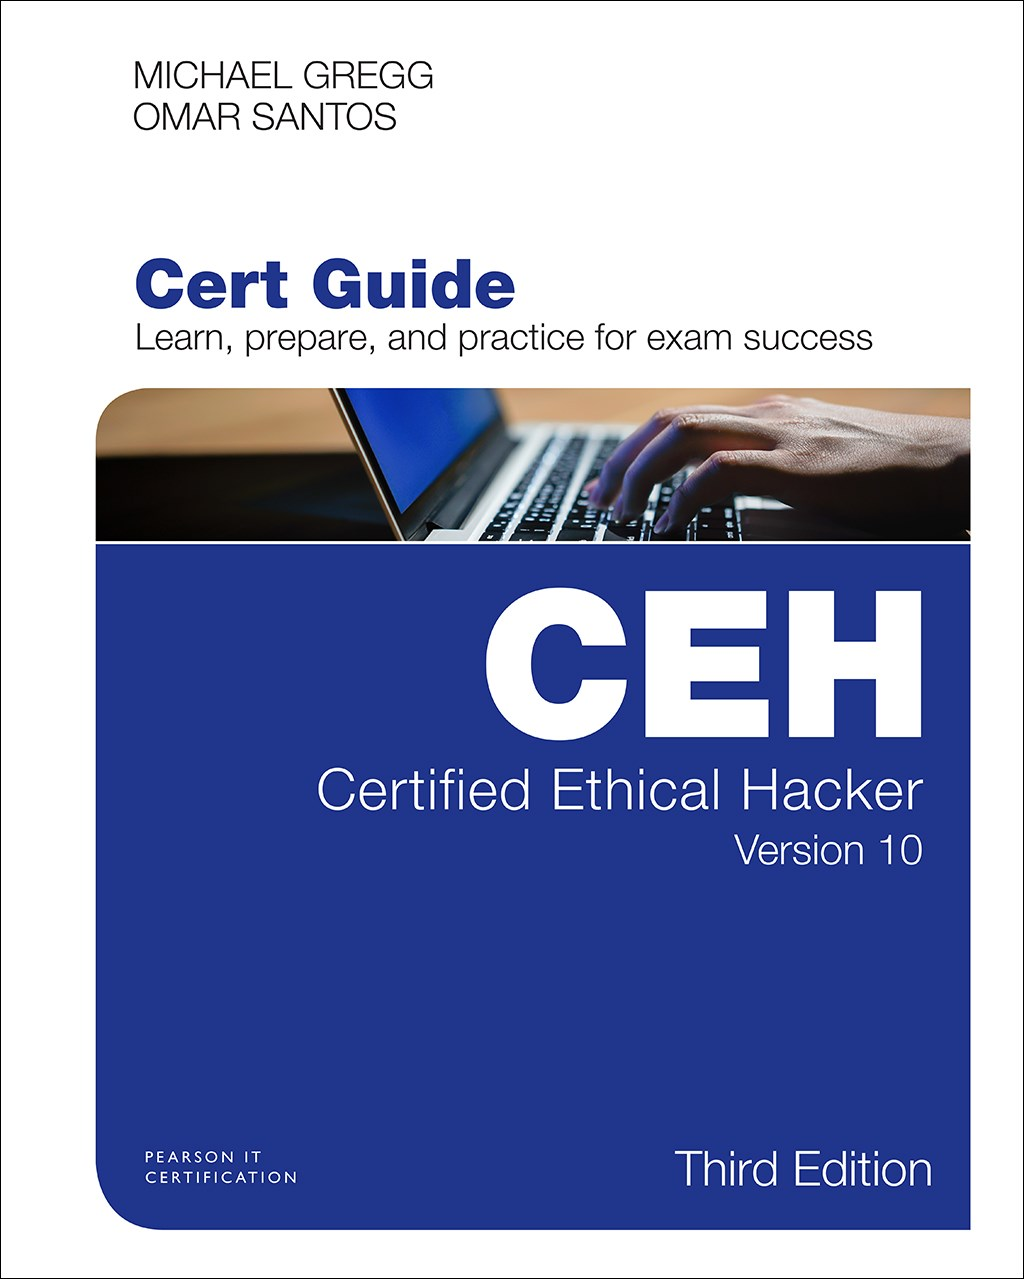 Certified Ethical Hacker (CEH) Version 10 Cert Guide, 3rd Edition